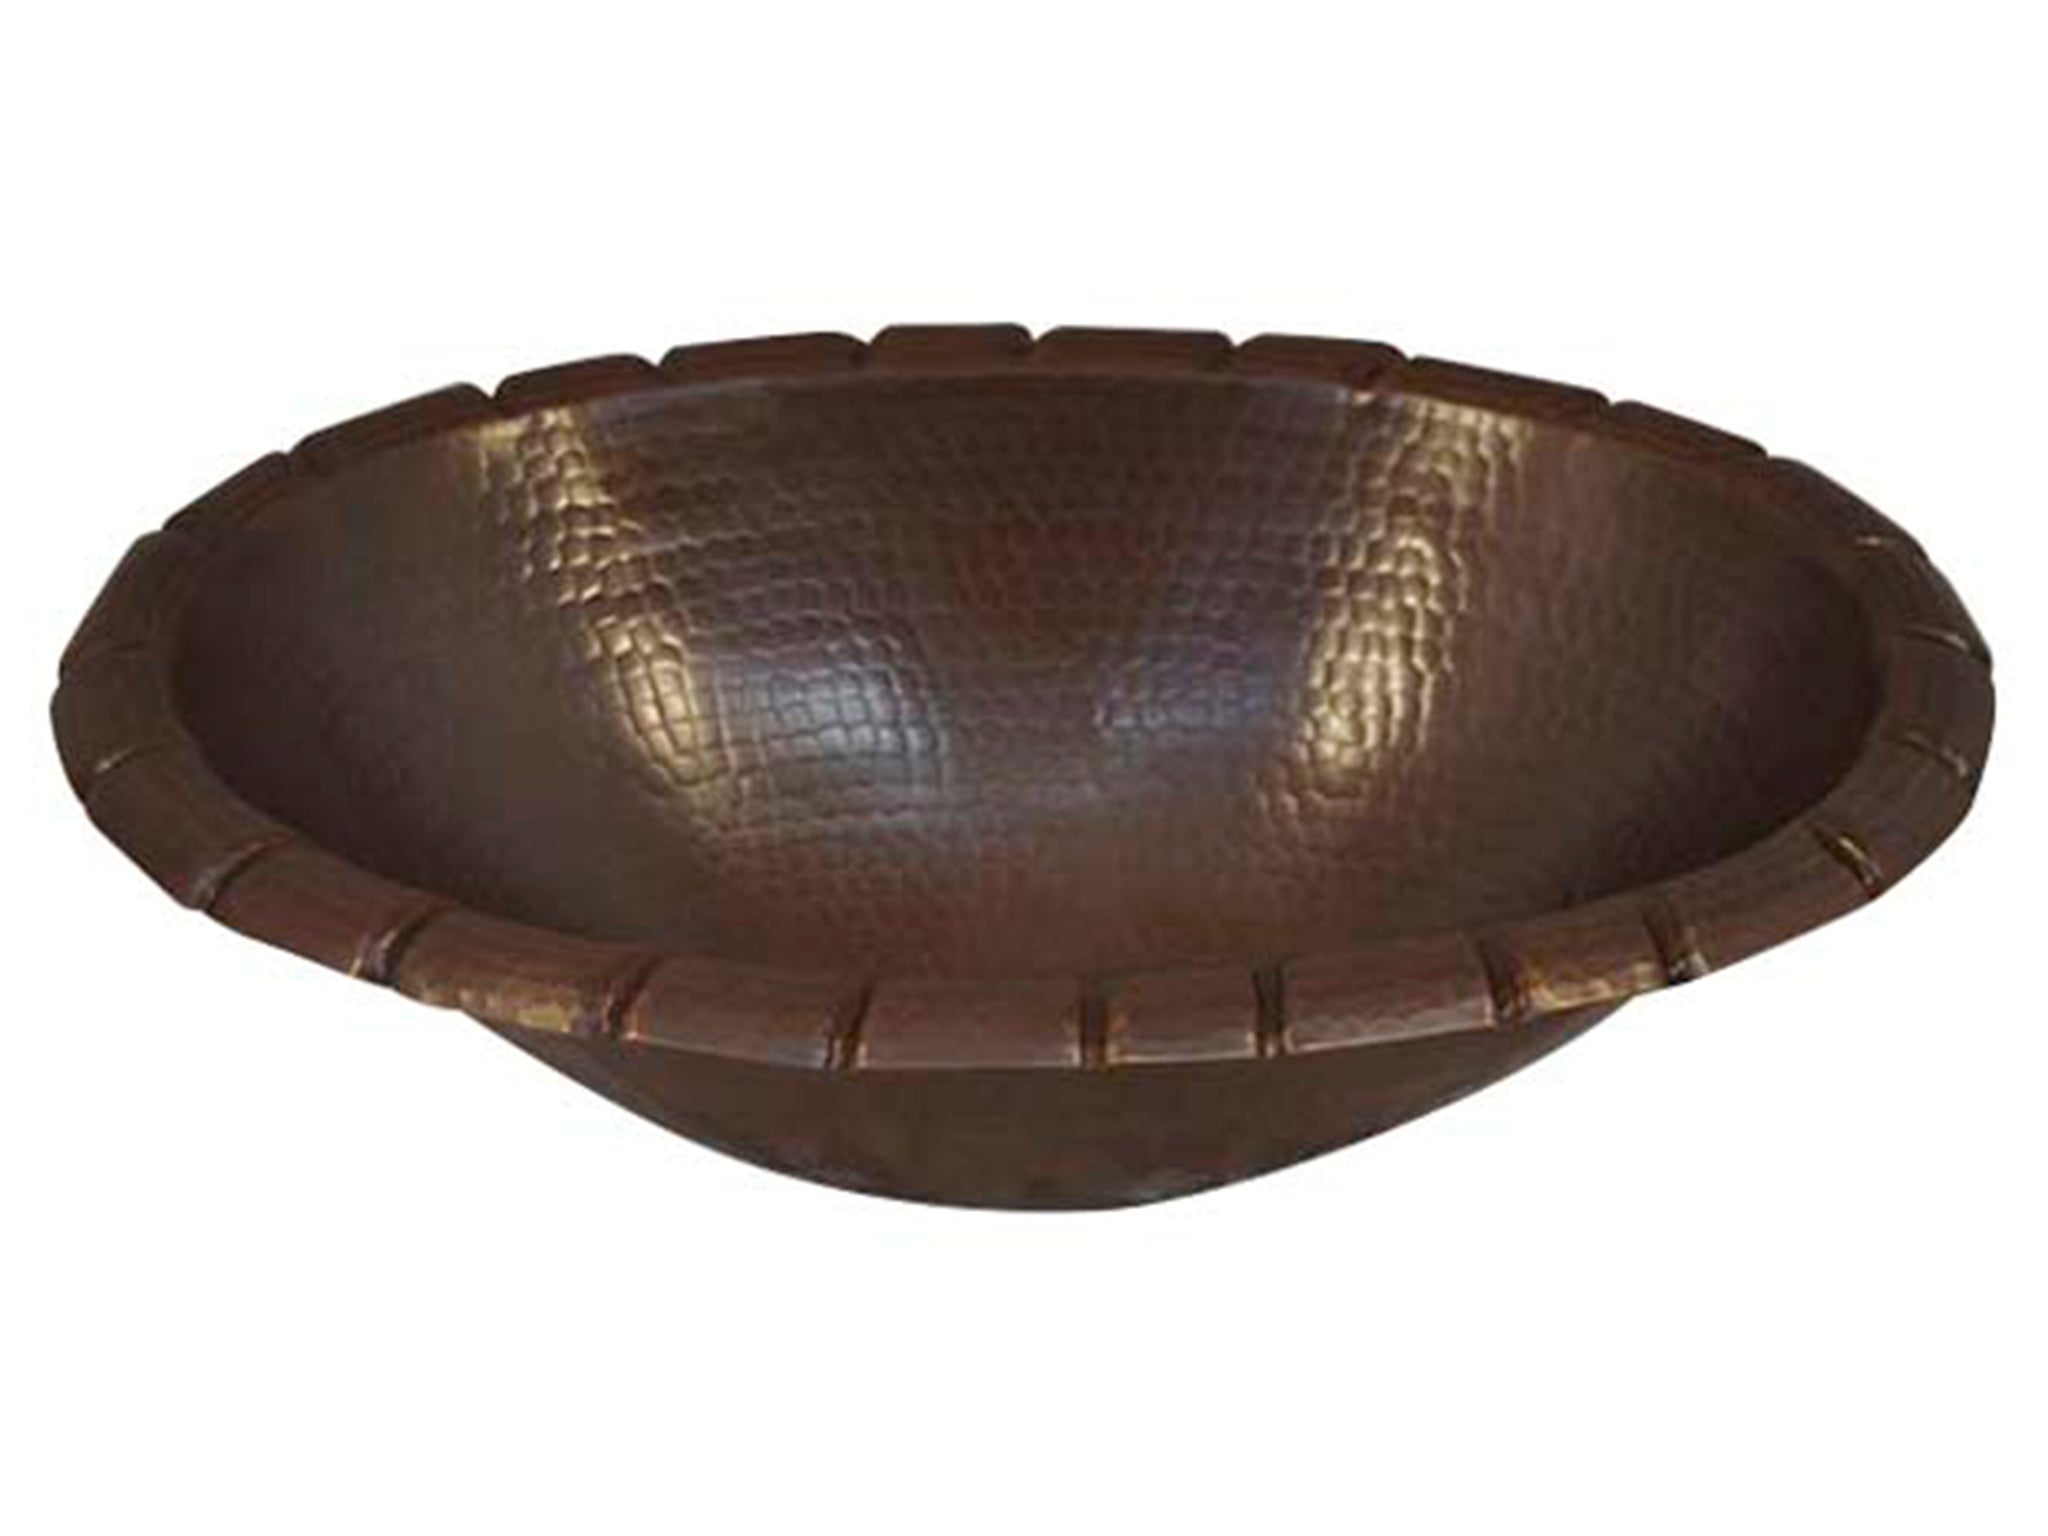 Oval Hammered Copper Sink with Rope Edge